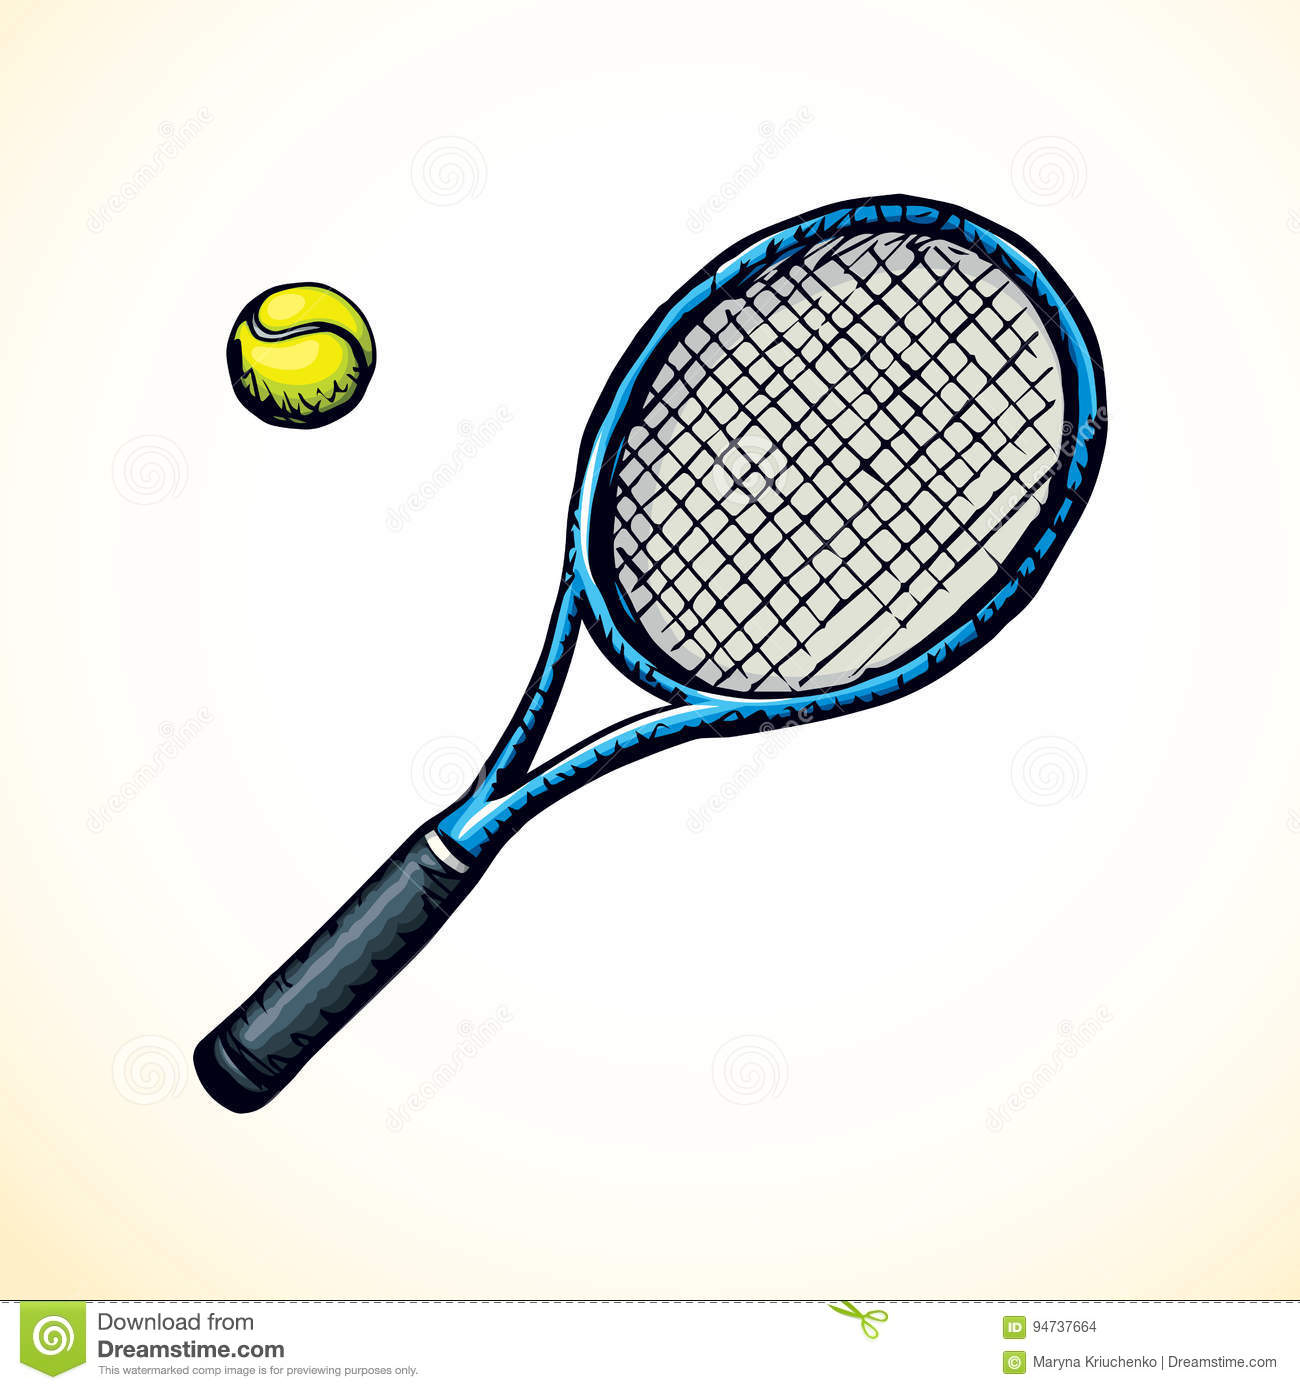 Tennis Racket And Ball Vector Drawing Stock Vector Illustration Of Match Backhand 94737664